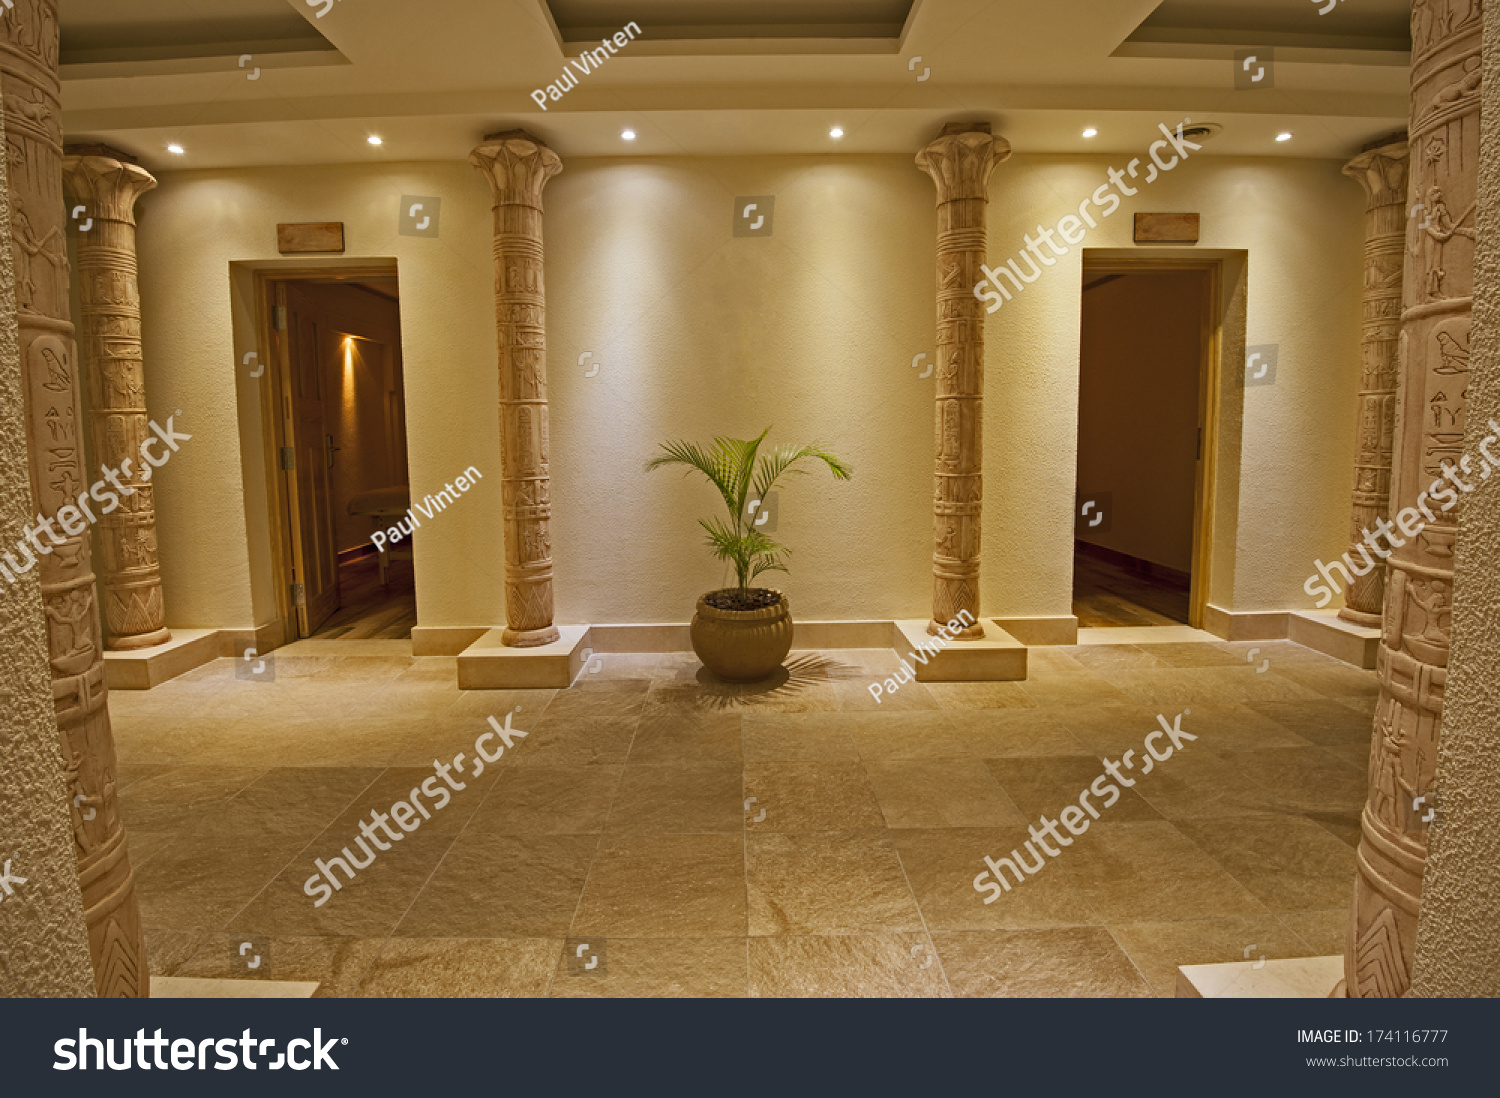 Interior Design Concept Luxury Health Spa Objects Stock Image 174116777